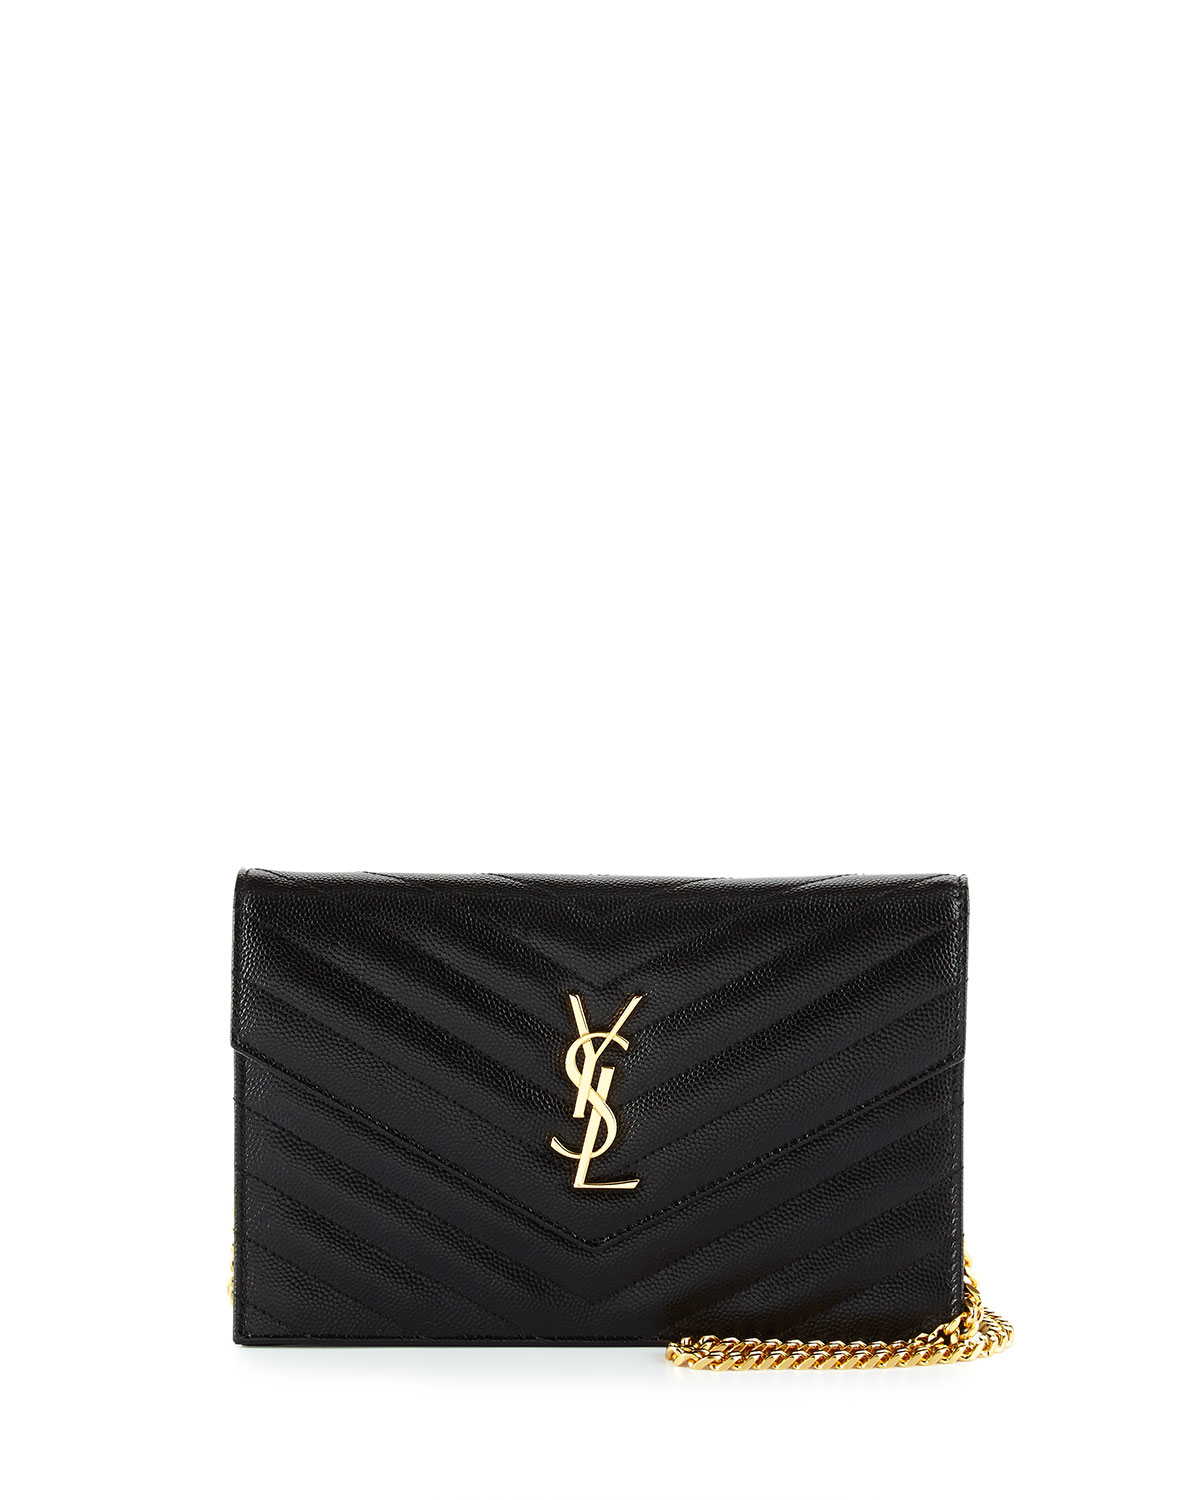 74ed64f7b5f9 Saint Laurent Monogram YSL Chevron Quilted Wallet on Chain